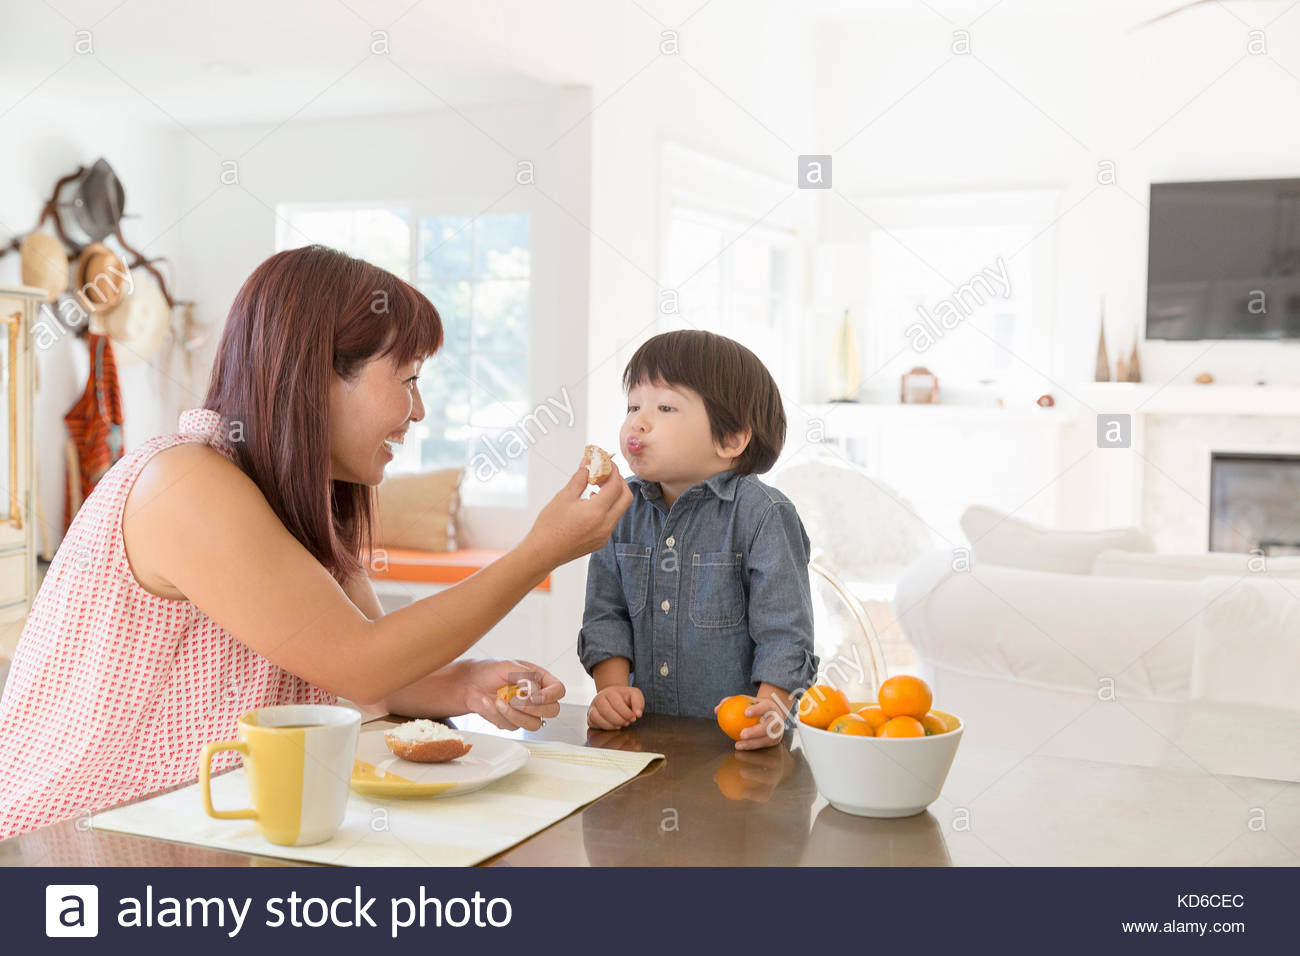 L'alimentation de la mère fils à table à manger Photo Stock